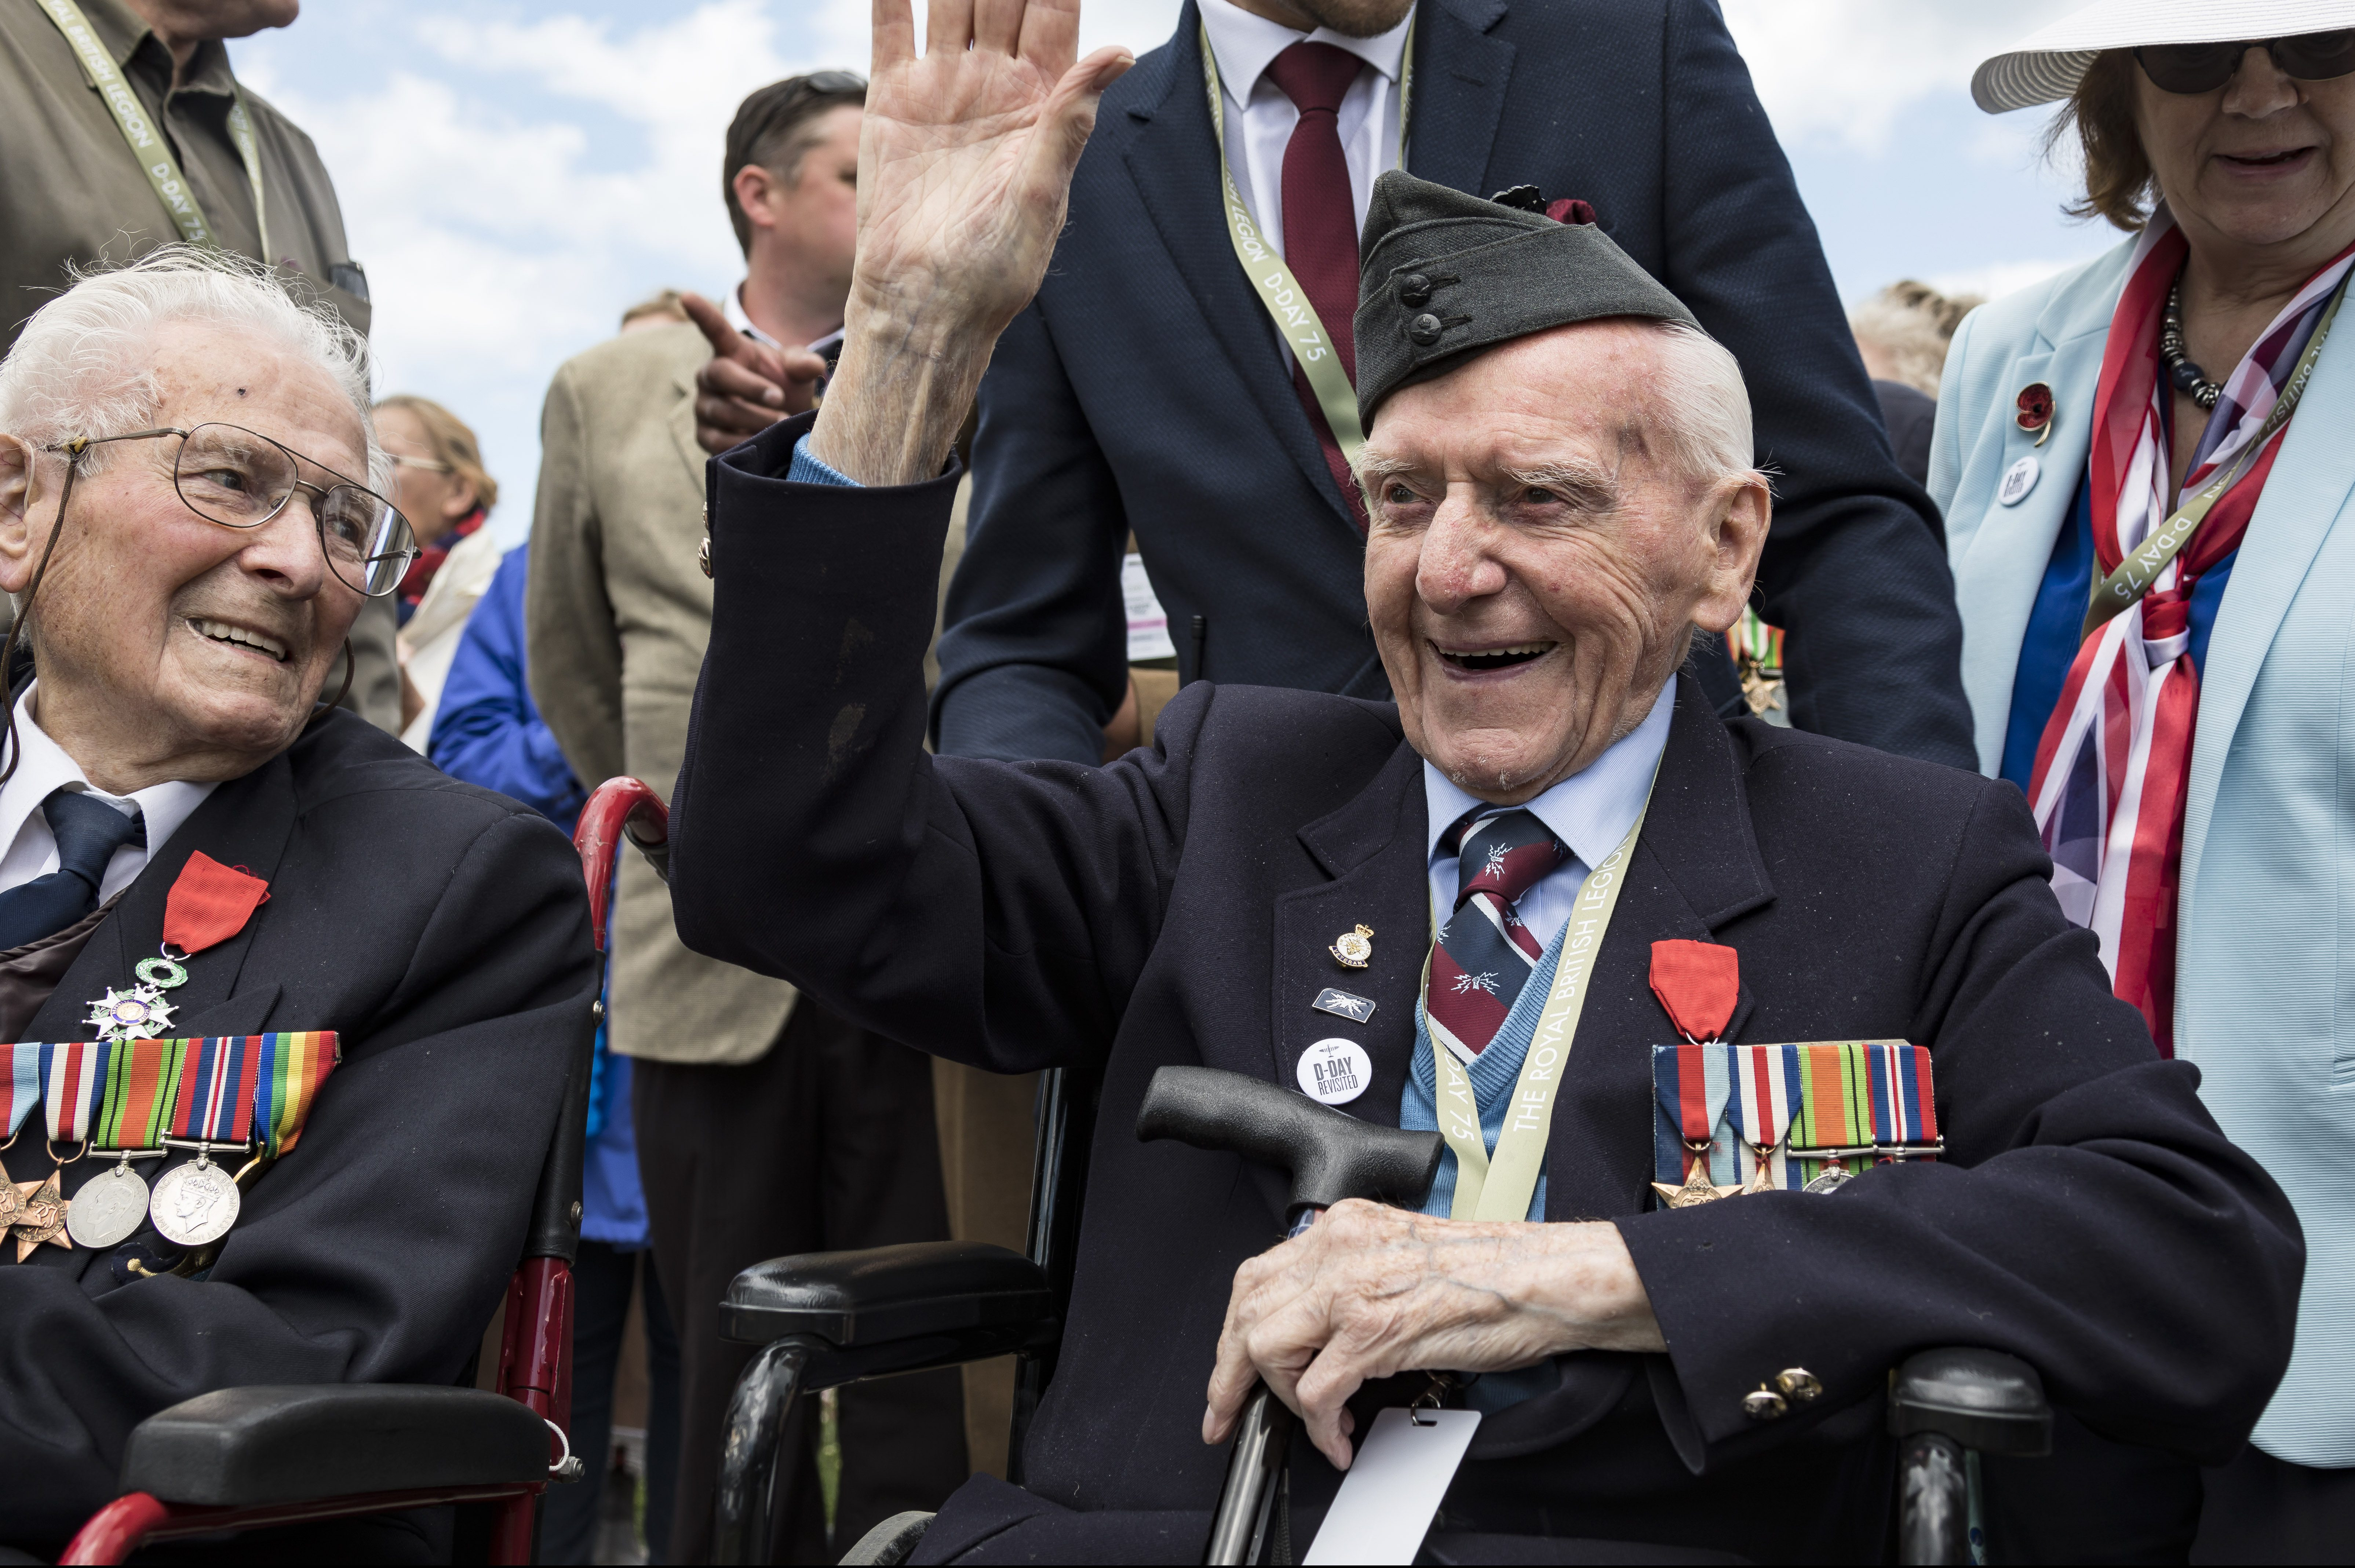 A veteran wearing a military beret and medals smiles and waves from his wheelchair